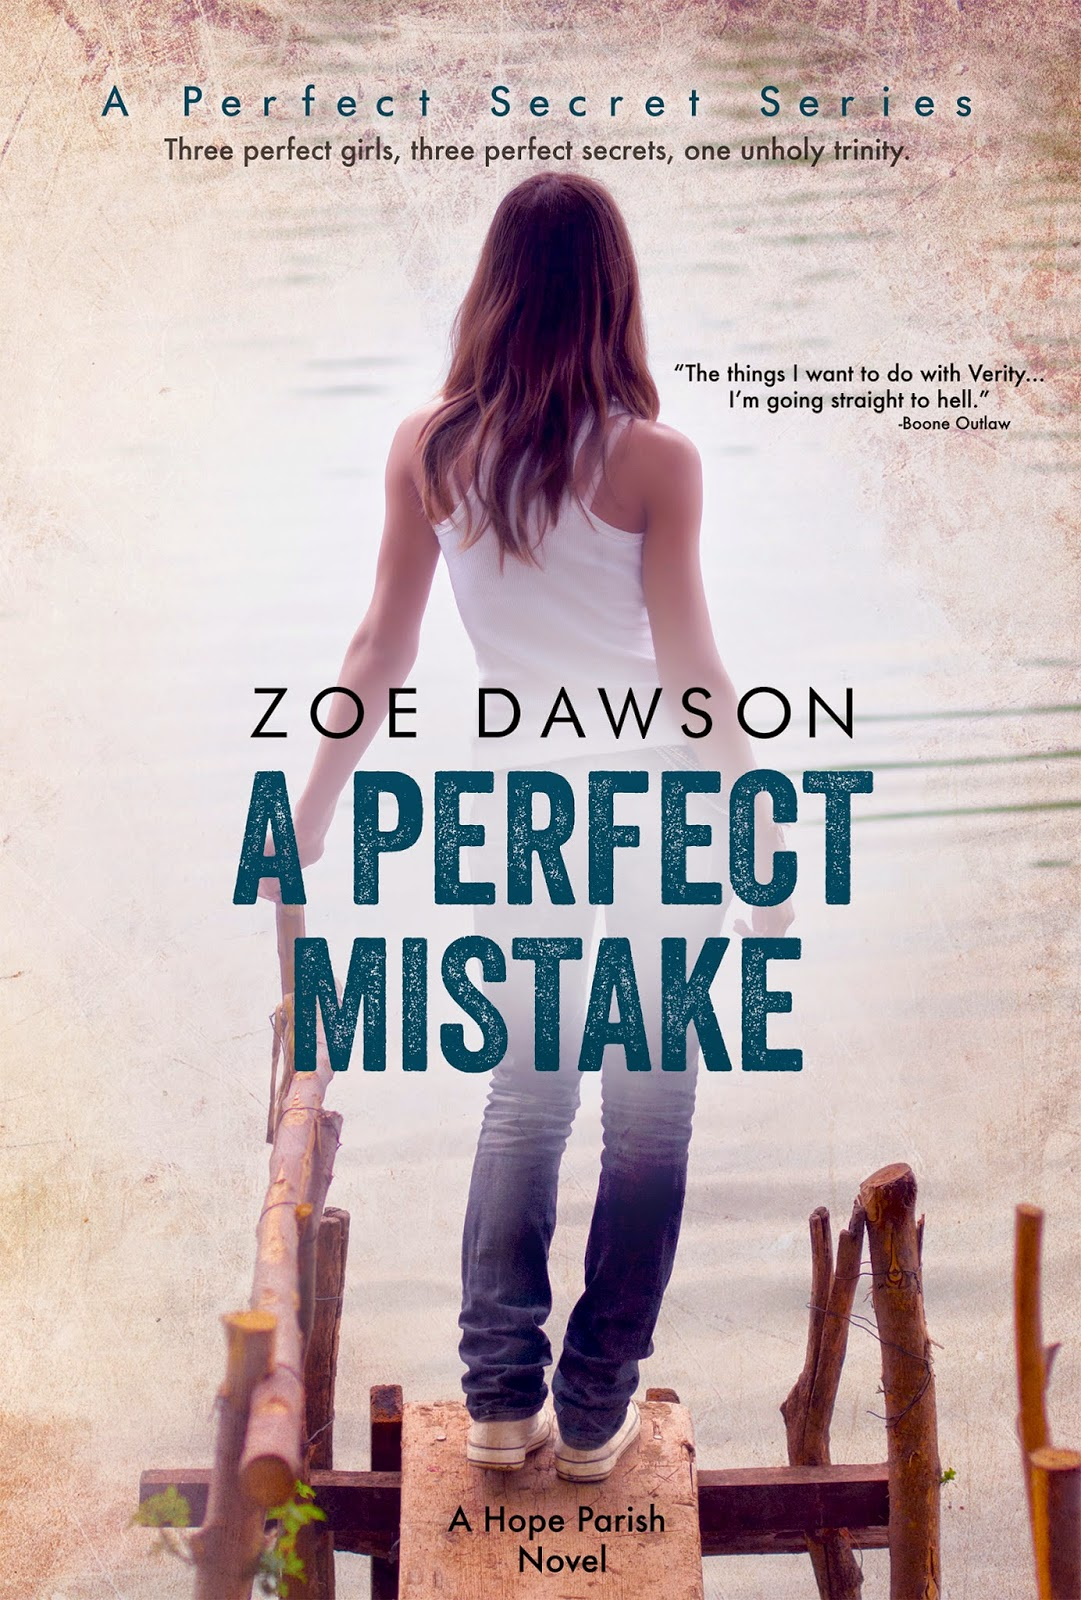 http://zoedawson.com/books/a-perfect-mistake/